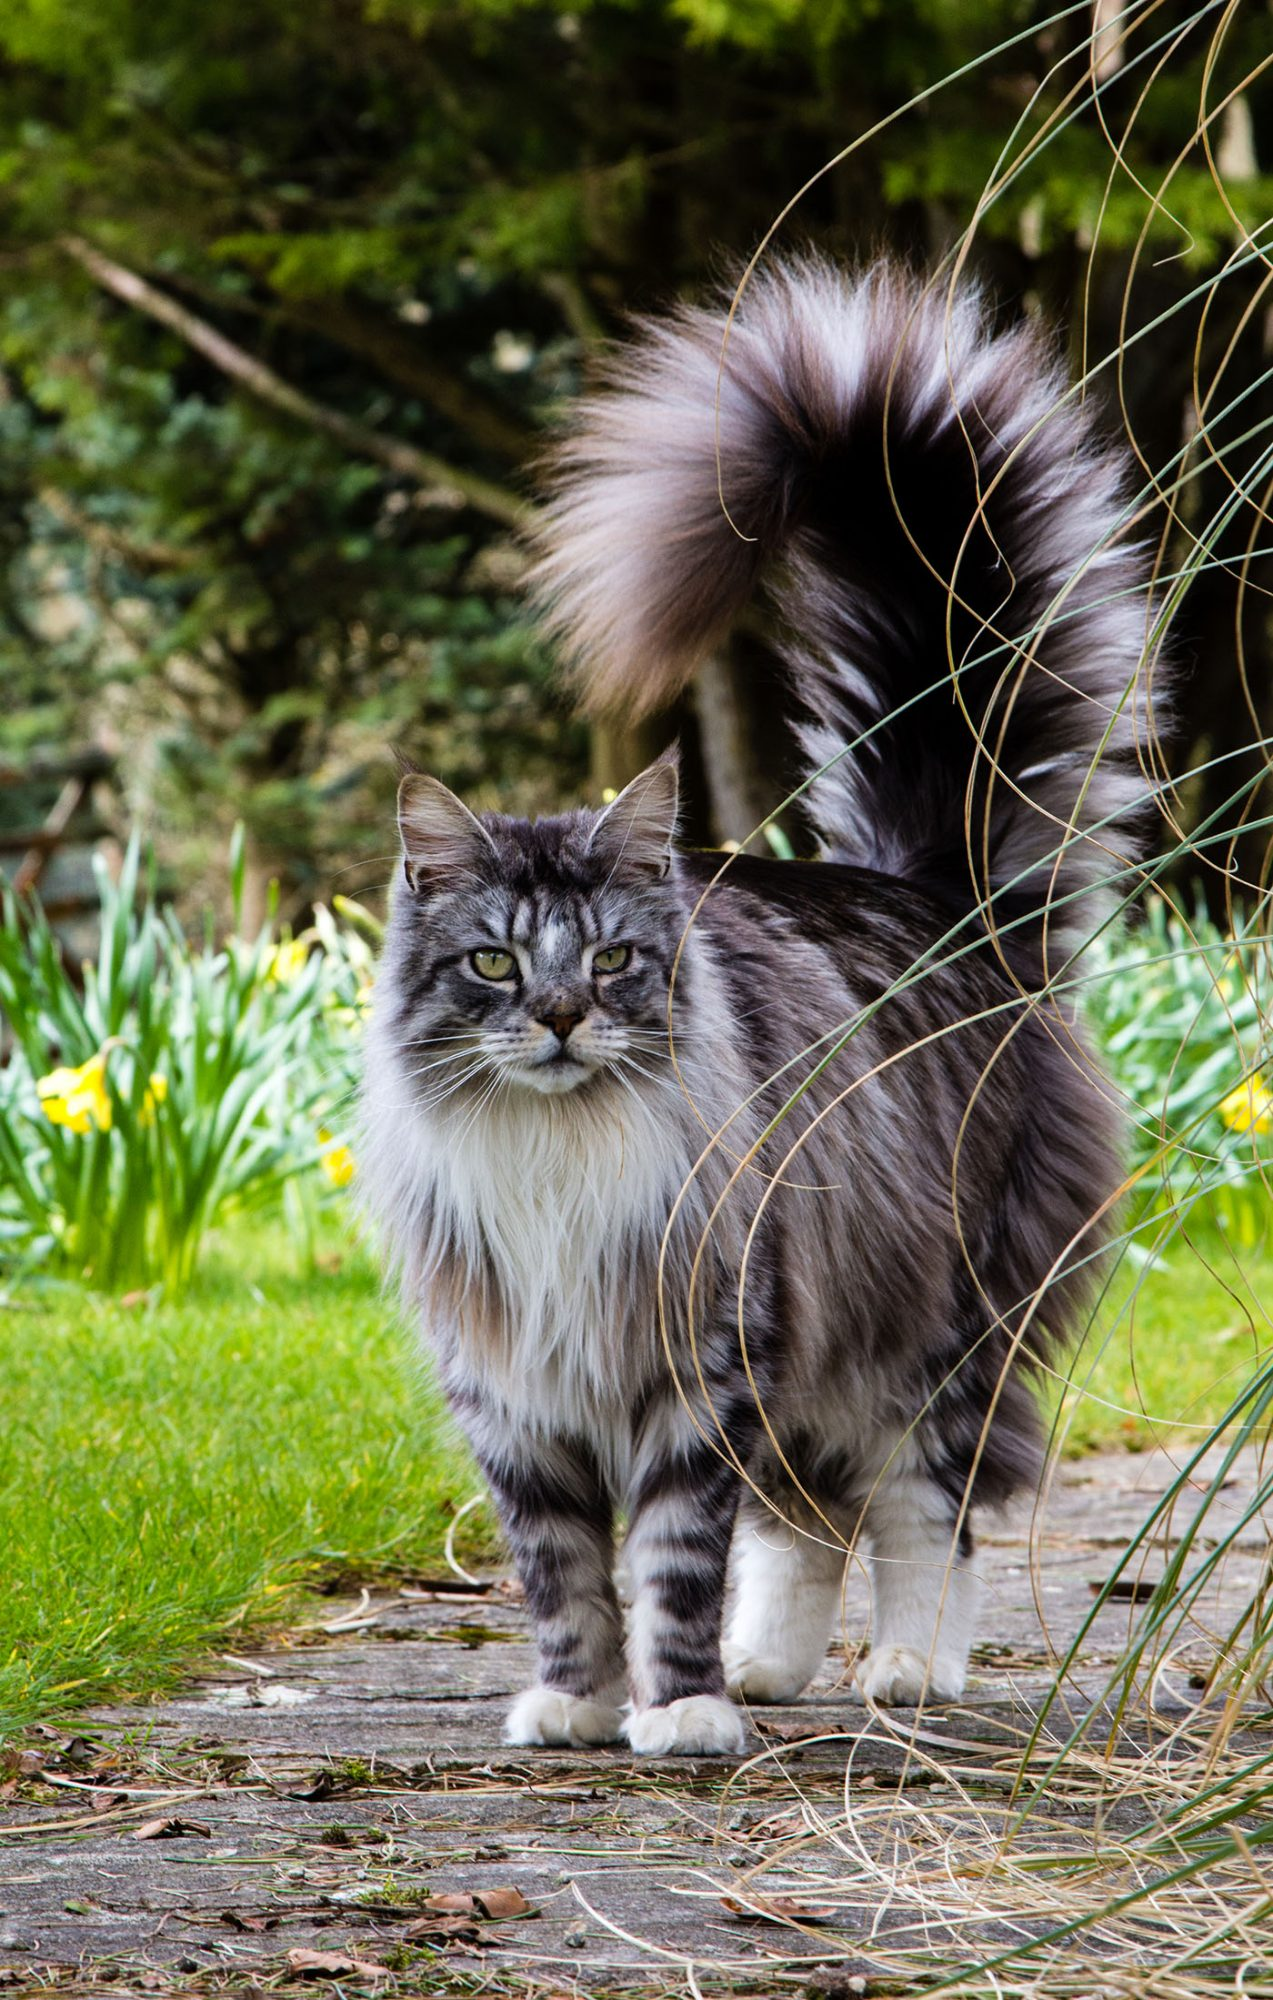 Maine coon cat with long fluffy tail walking outside